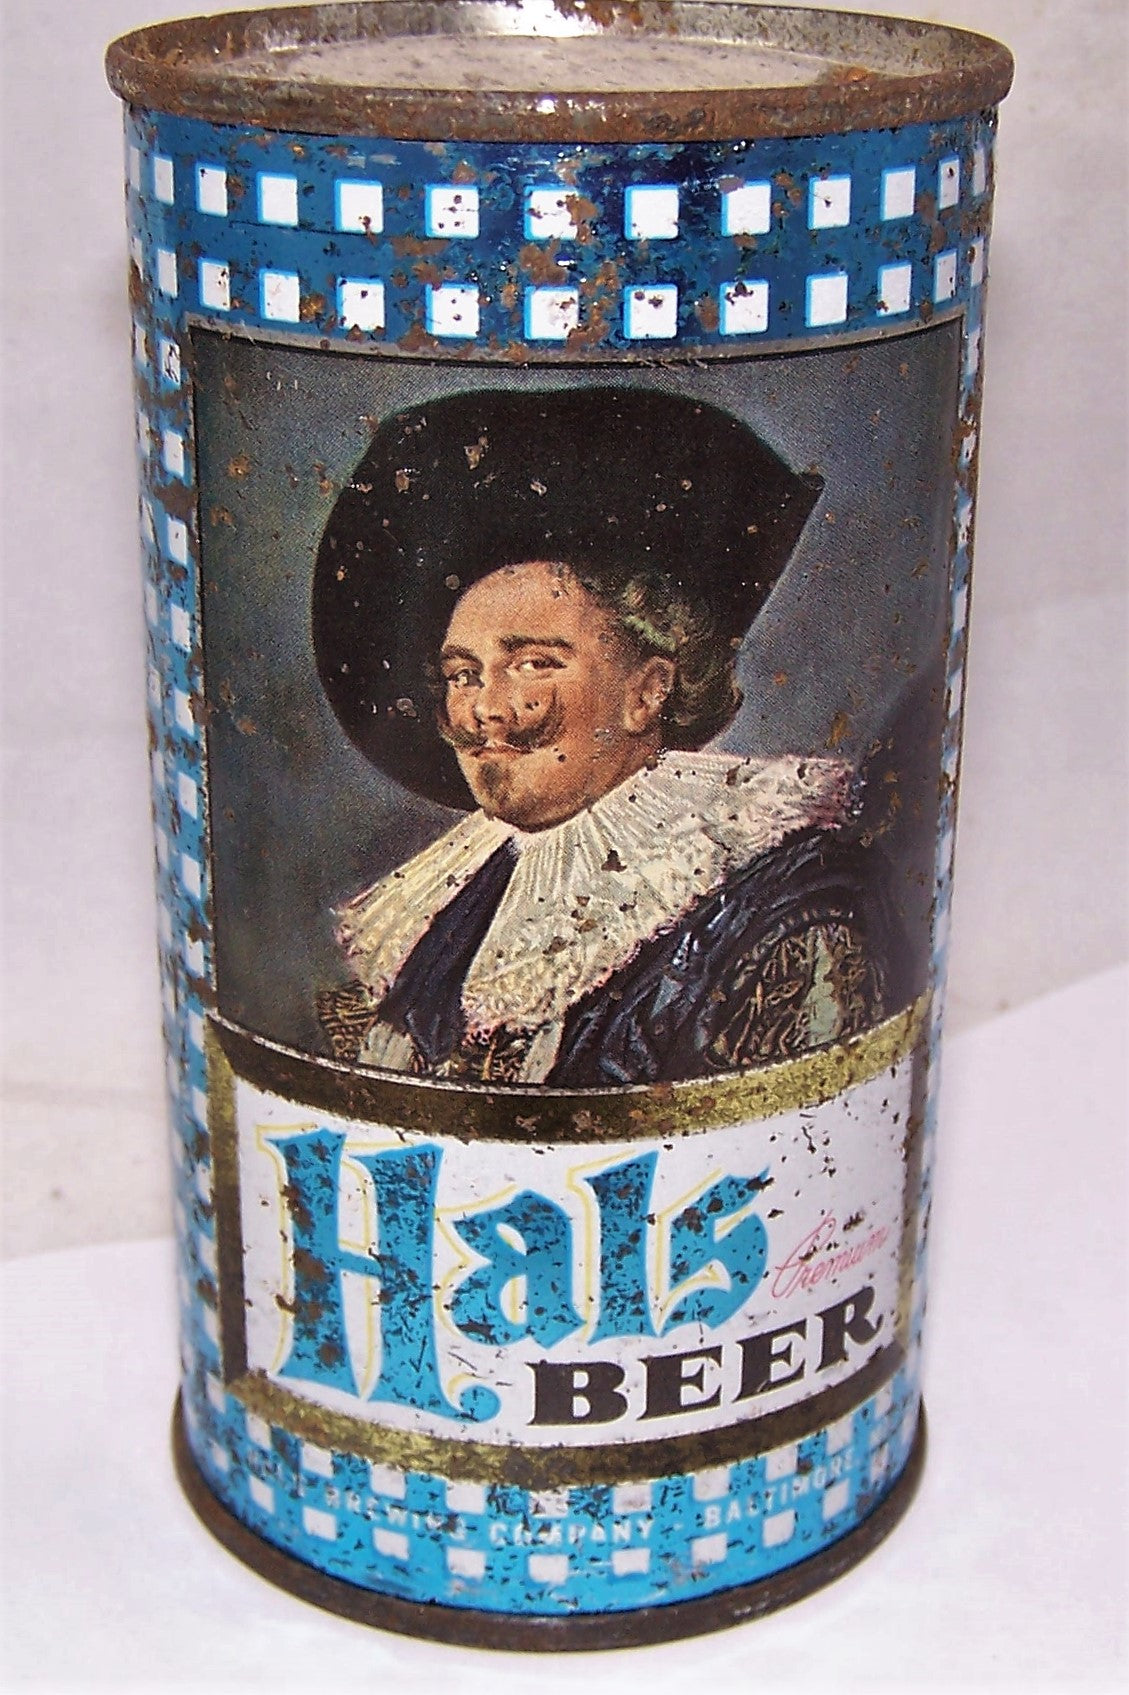 Hals Beer, All original, Grade 2+ Can.